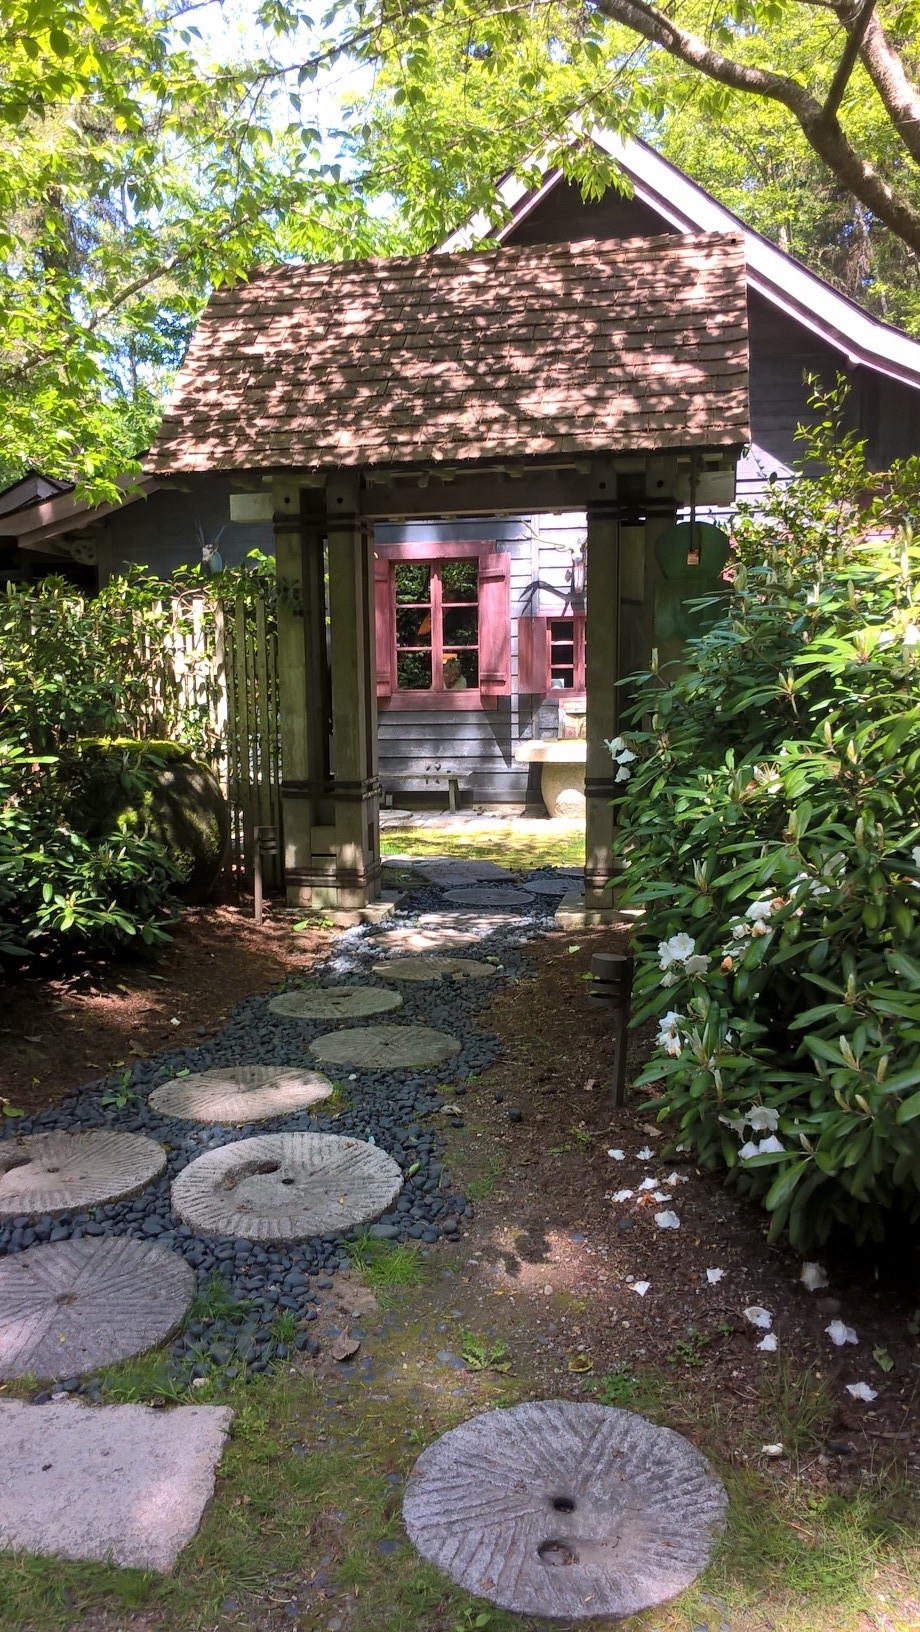 One of the entrances to the Chinese Tea Merchant's House, where most of our yoga took place. Gigantic doors open up to the landscaped garden and forest beyond.